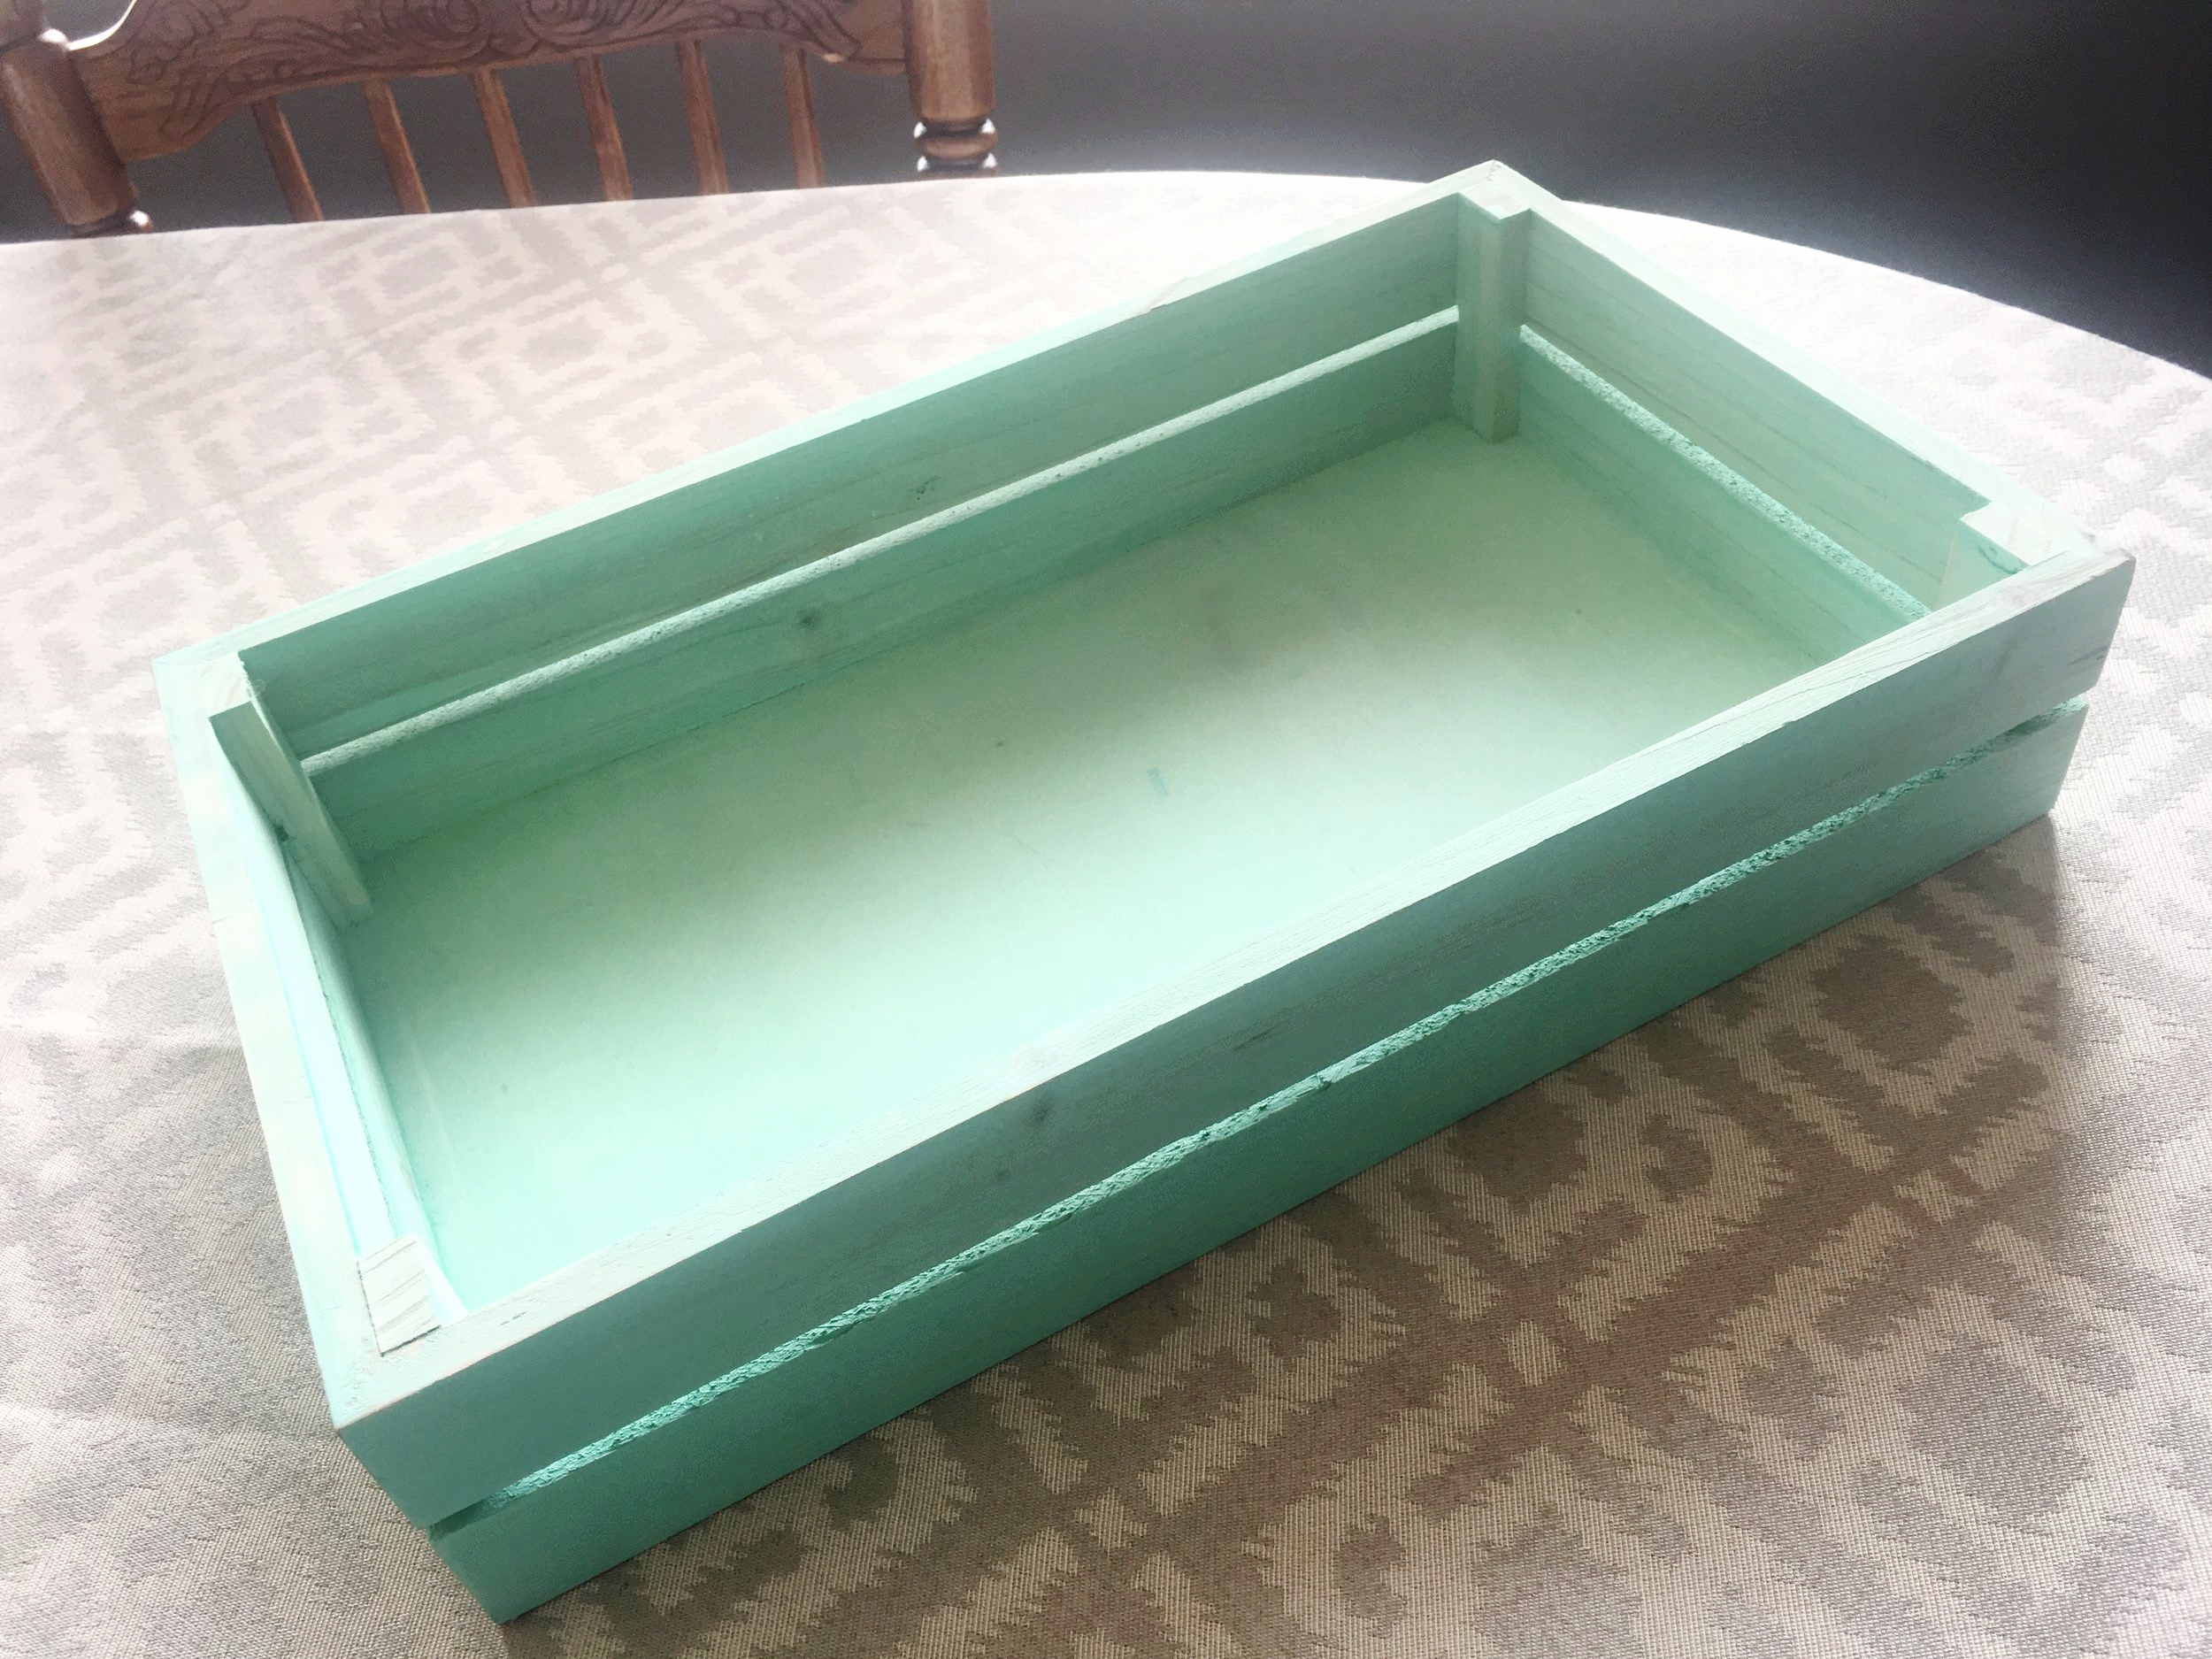 Turquoise Wooden Tray, $3